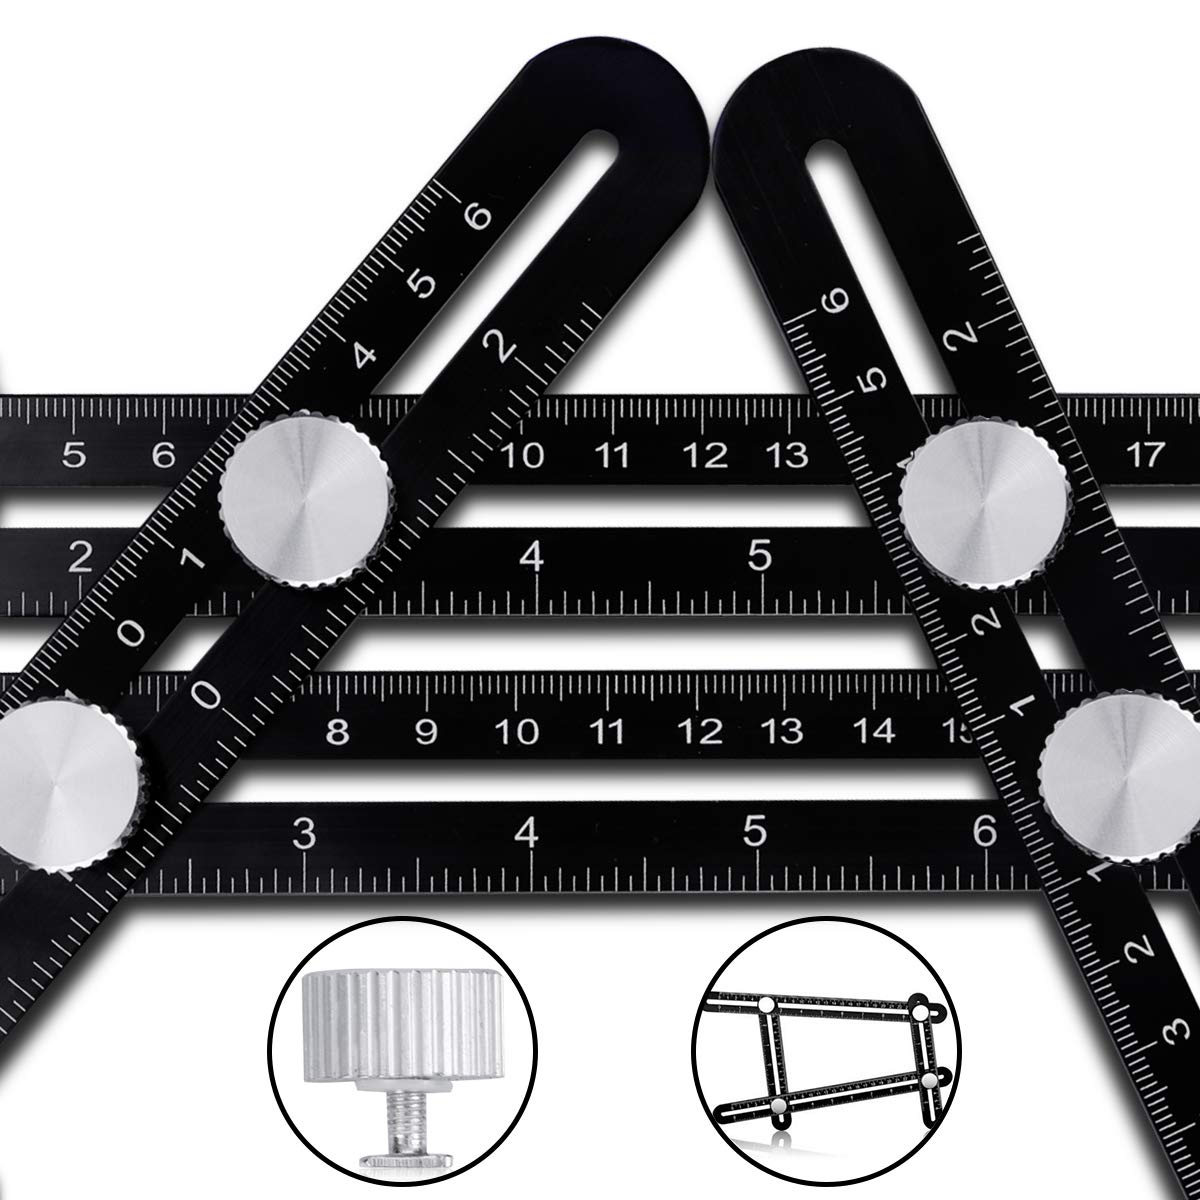 Angleizer Template Tool CRAZYLYNX Multi Angle Measuring Ruler Premium Aluminum Alloy Easy Angle Ruler for DIY Handymen Builders Carpenters